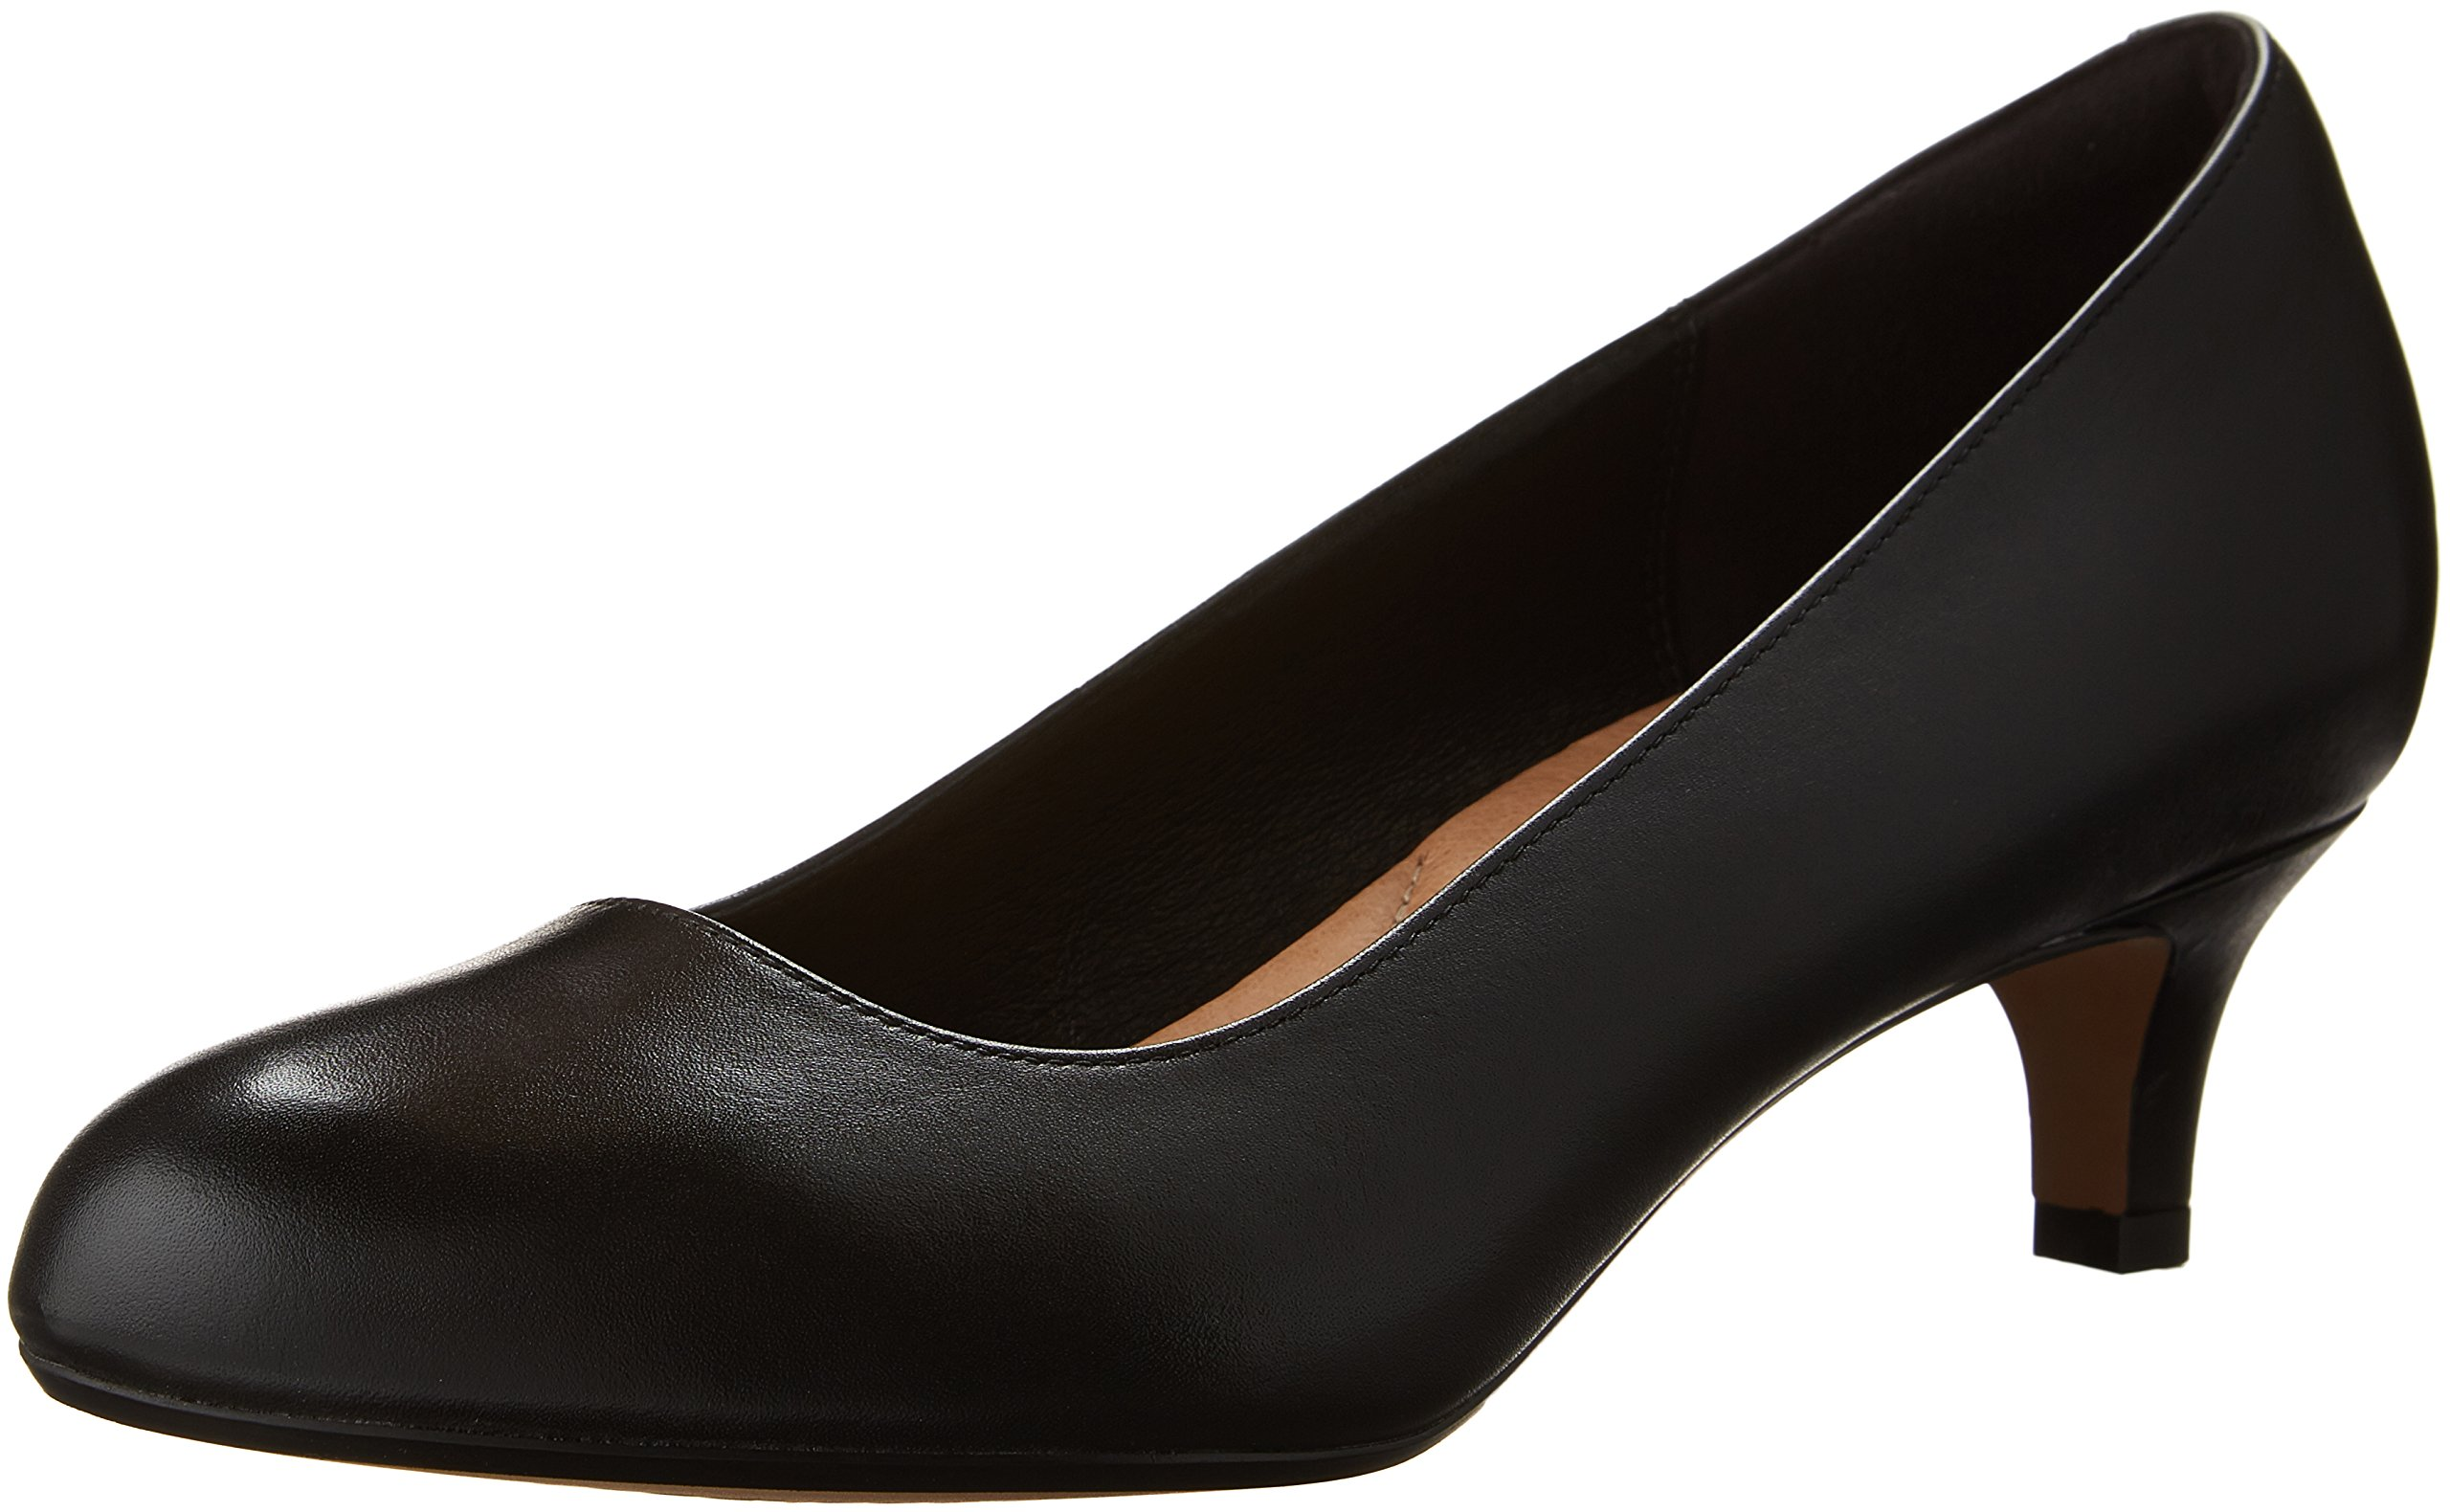 Clarks Women's Heavenly Shine Dress Pump, Black Leather, 7 W US